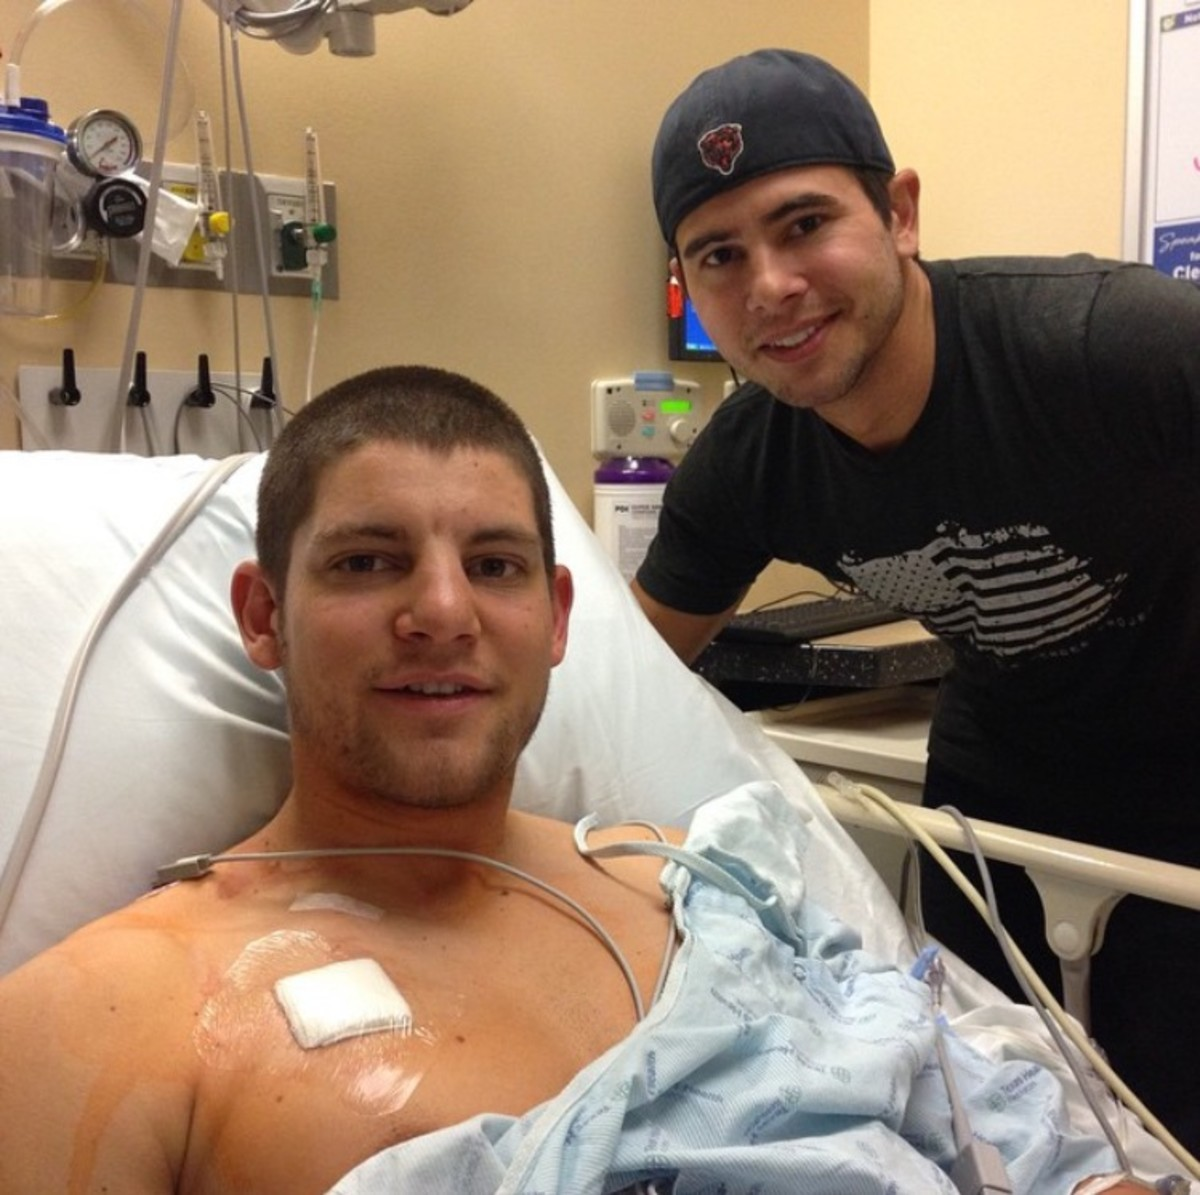 Mike with our other brother Jeff. This photo shows Mike's chemo port installed, fall 2014.